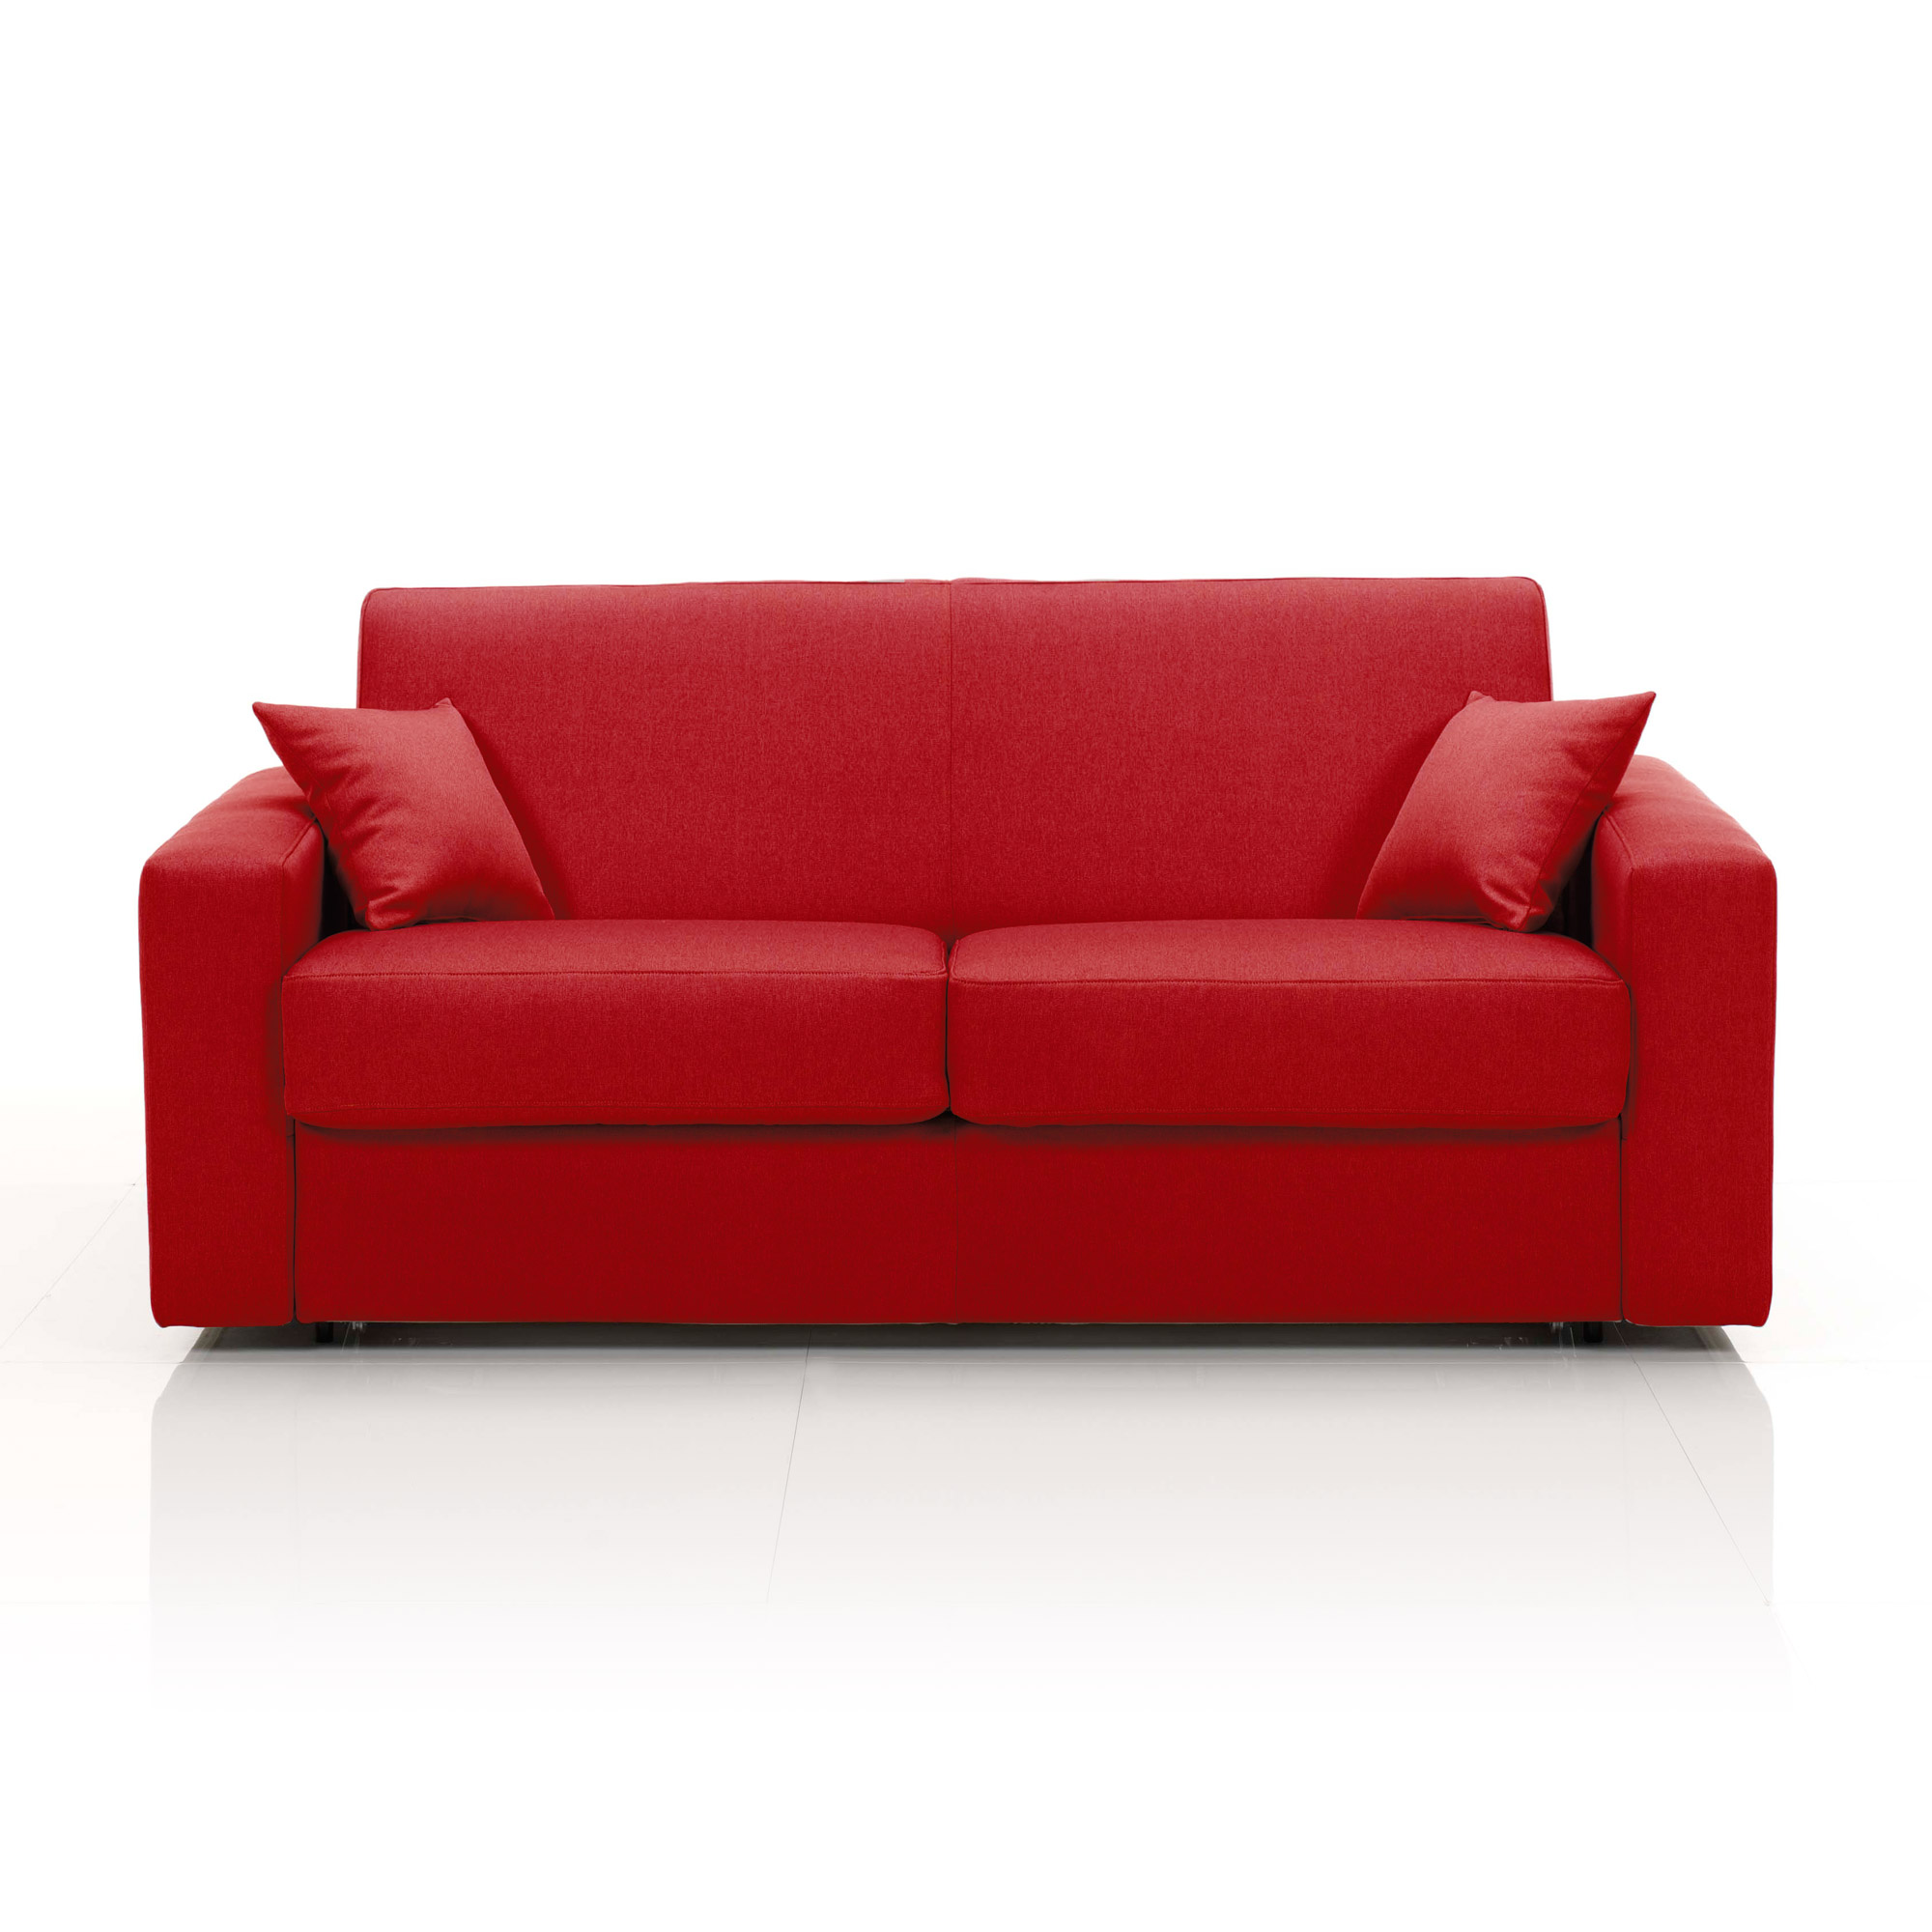 Canap convertible 2 places maxi tissu d houssable rouge ebay - Canape convertible definition ...